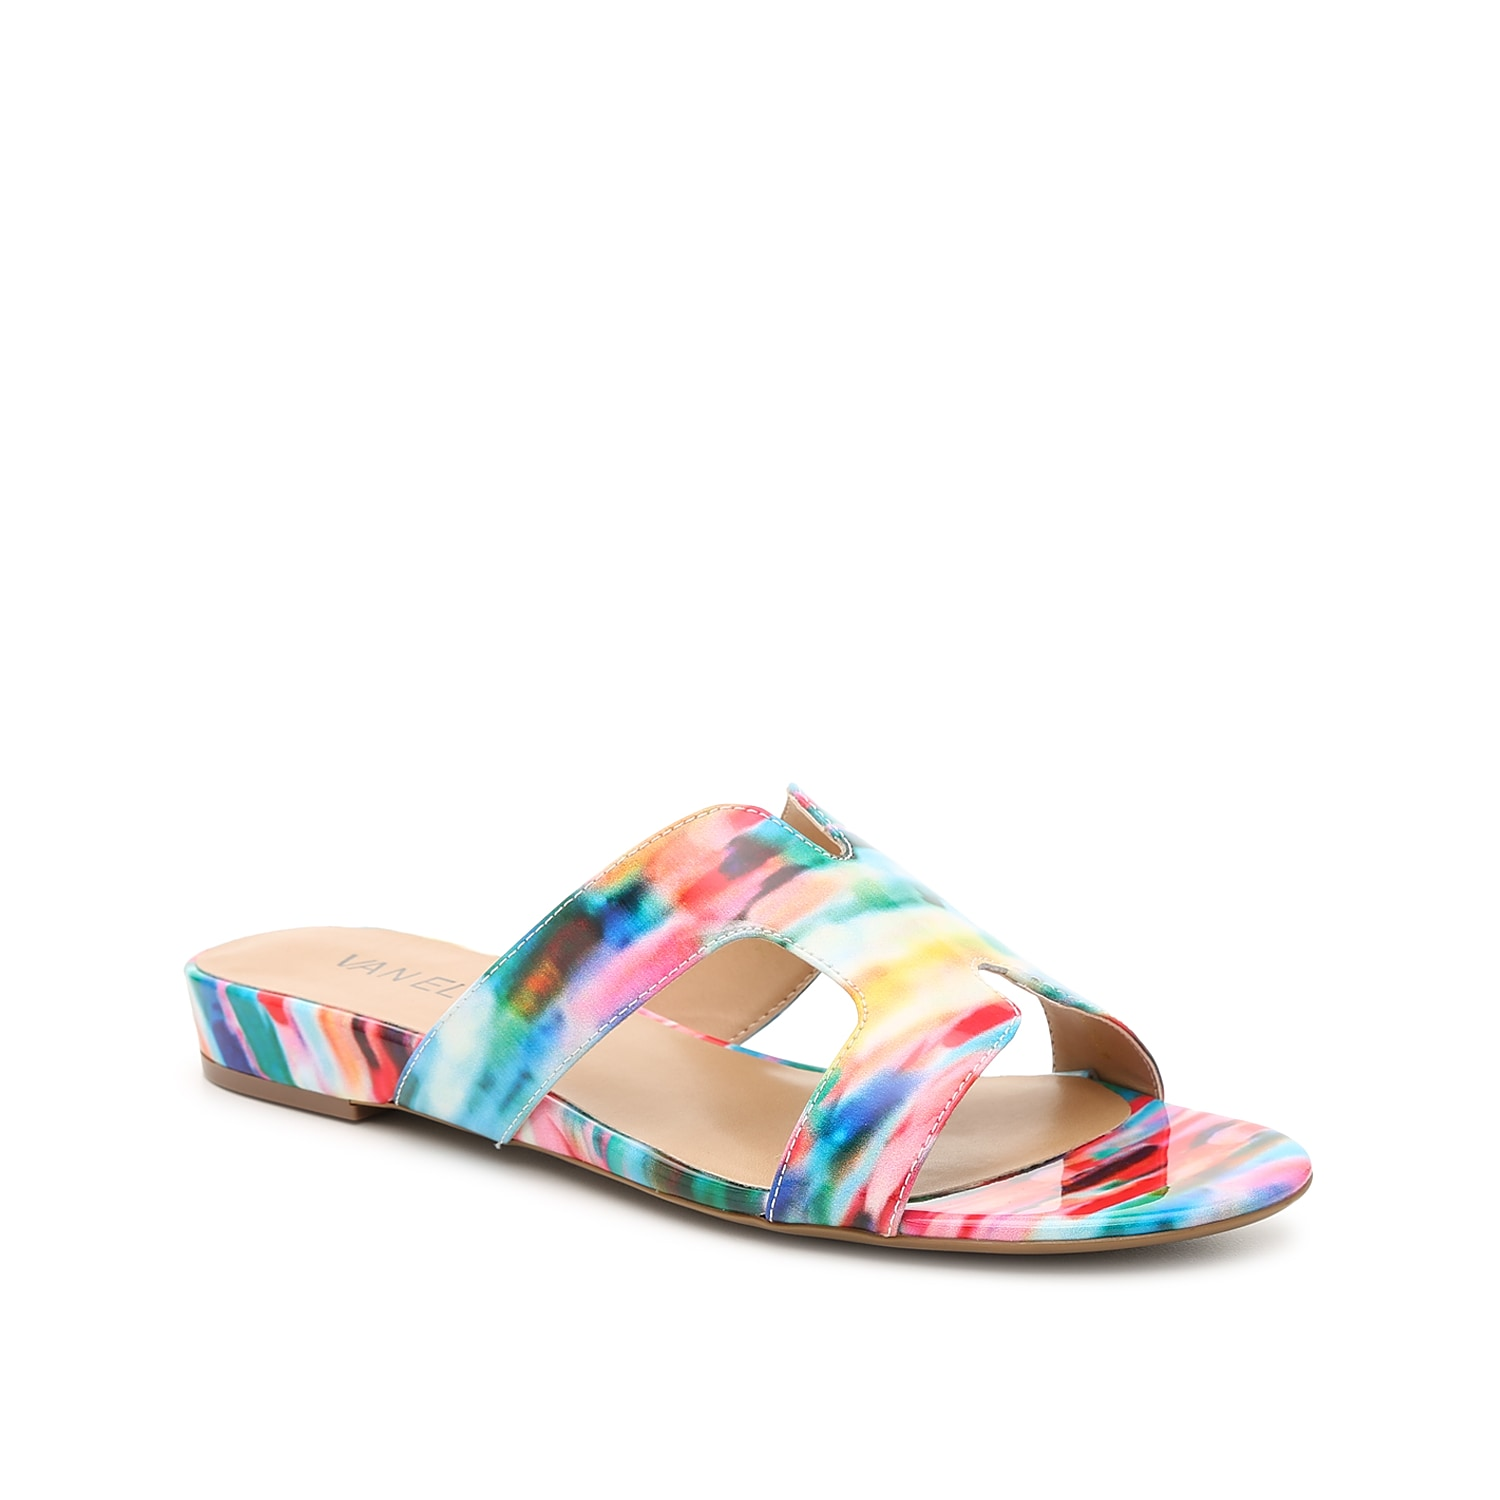 The Brynn sandal from VANELi flaunts a versatile design that is easy to dress up or down. With side cut-outs and an eye-catching upper, this pair will complement jeans, dresses, or capris!